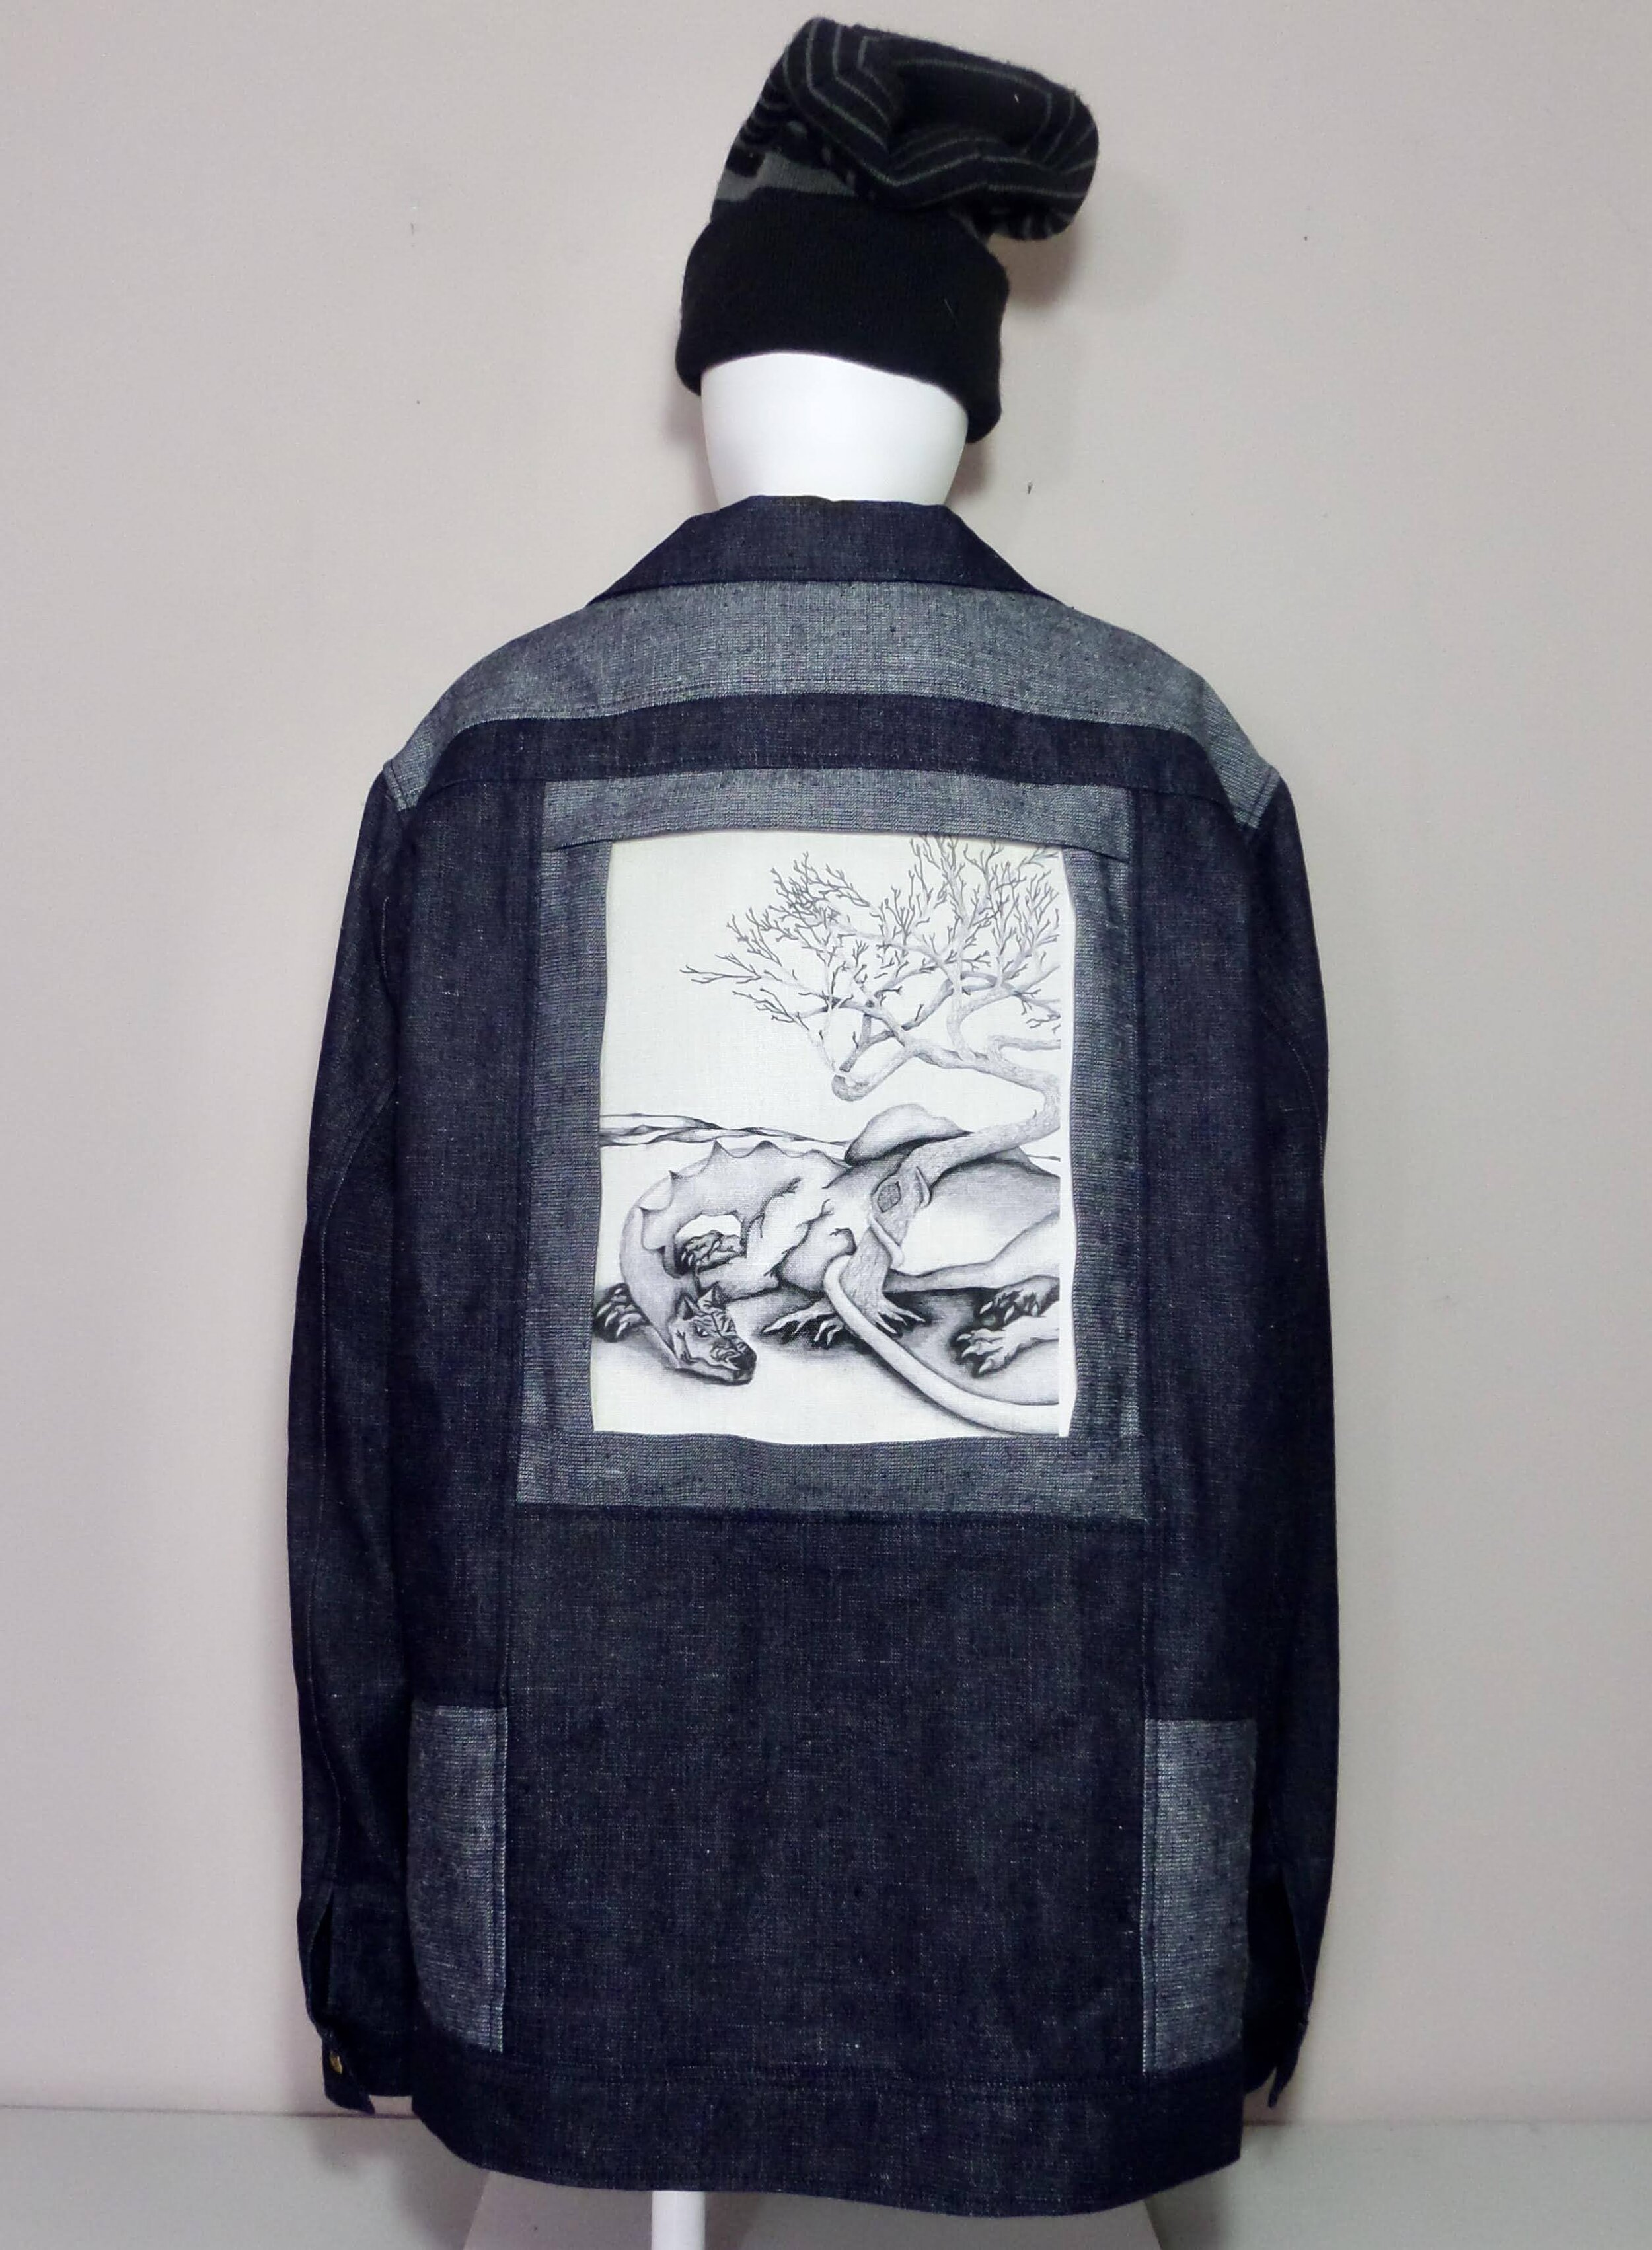 Self to Sleep Print Shareables Jacket by James Boggs and Inclusivi-Tee